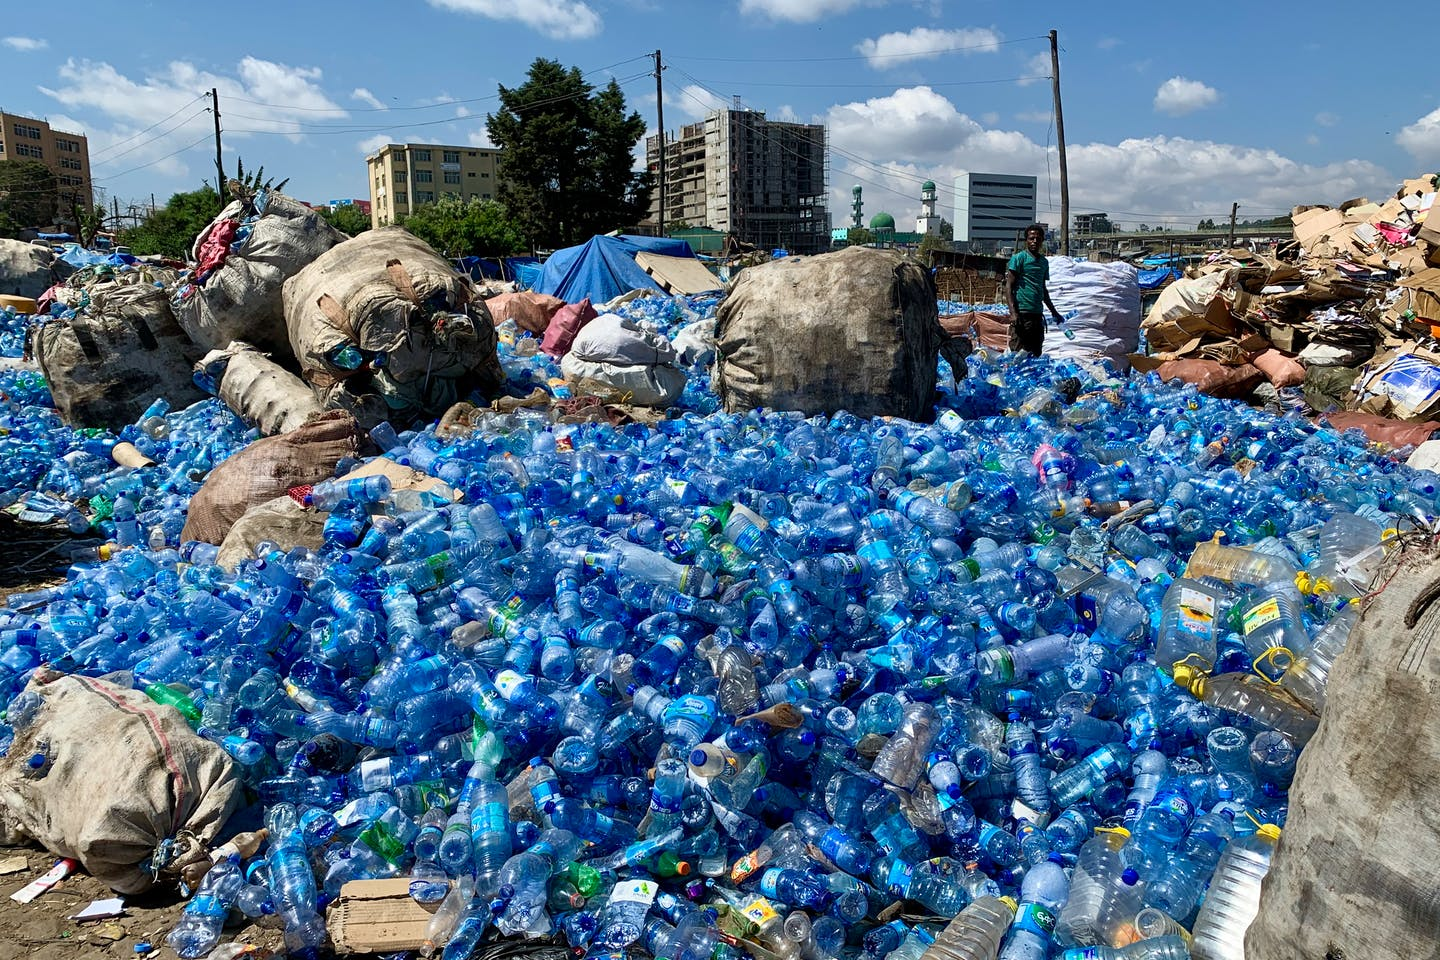 Plastic water bottles await collection for recycling in Africa.